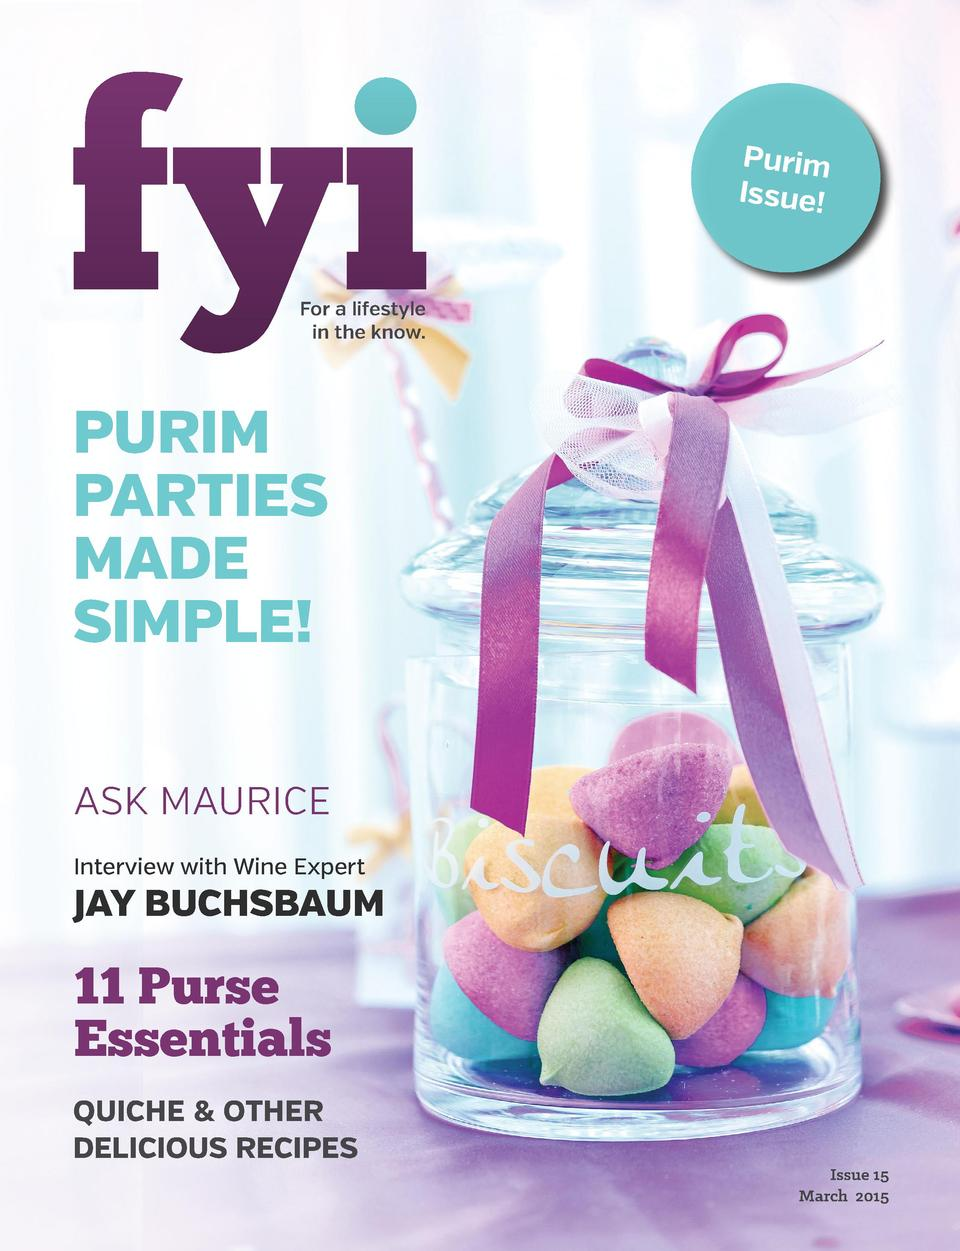 Purim Issue  For a lifestyle in the know.  Purim Parties made simple  ask maurice Interview with Wine Expert  Jay Buchsbau...